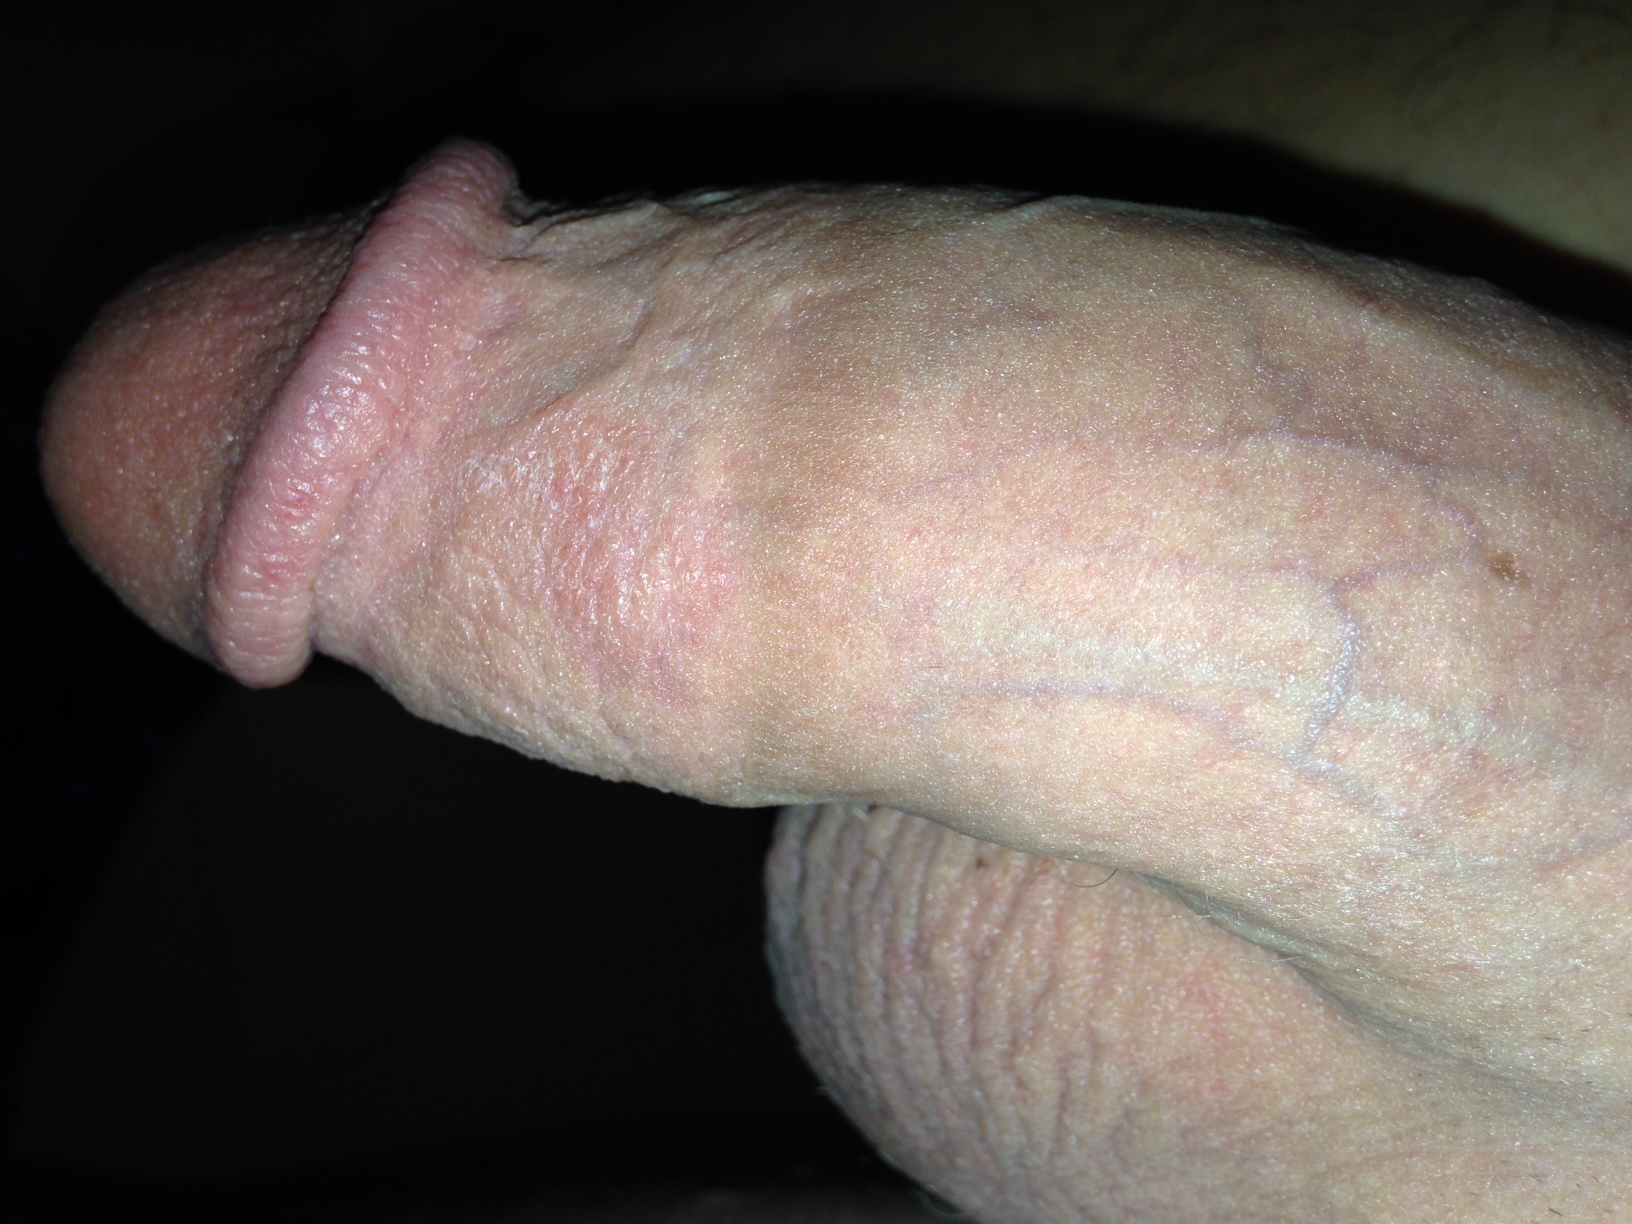 Rash on shaft of penis